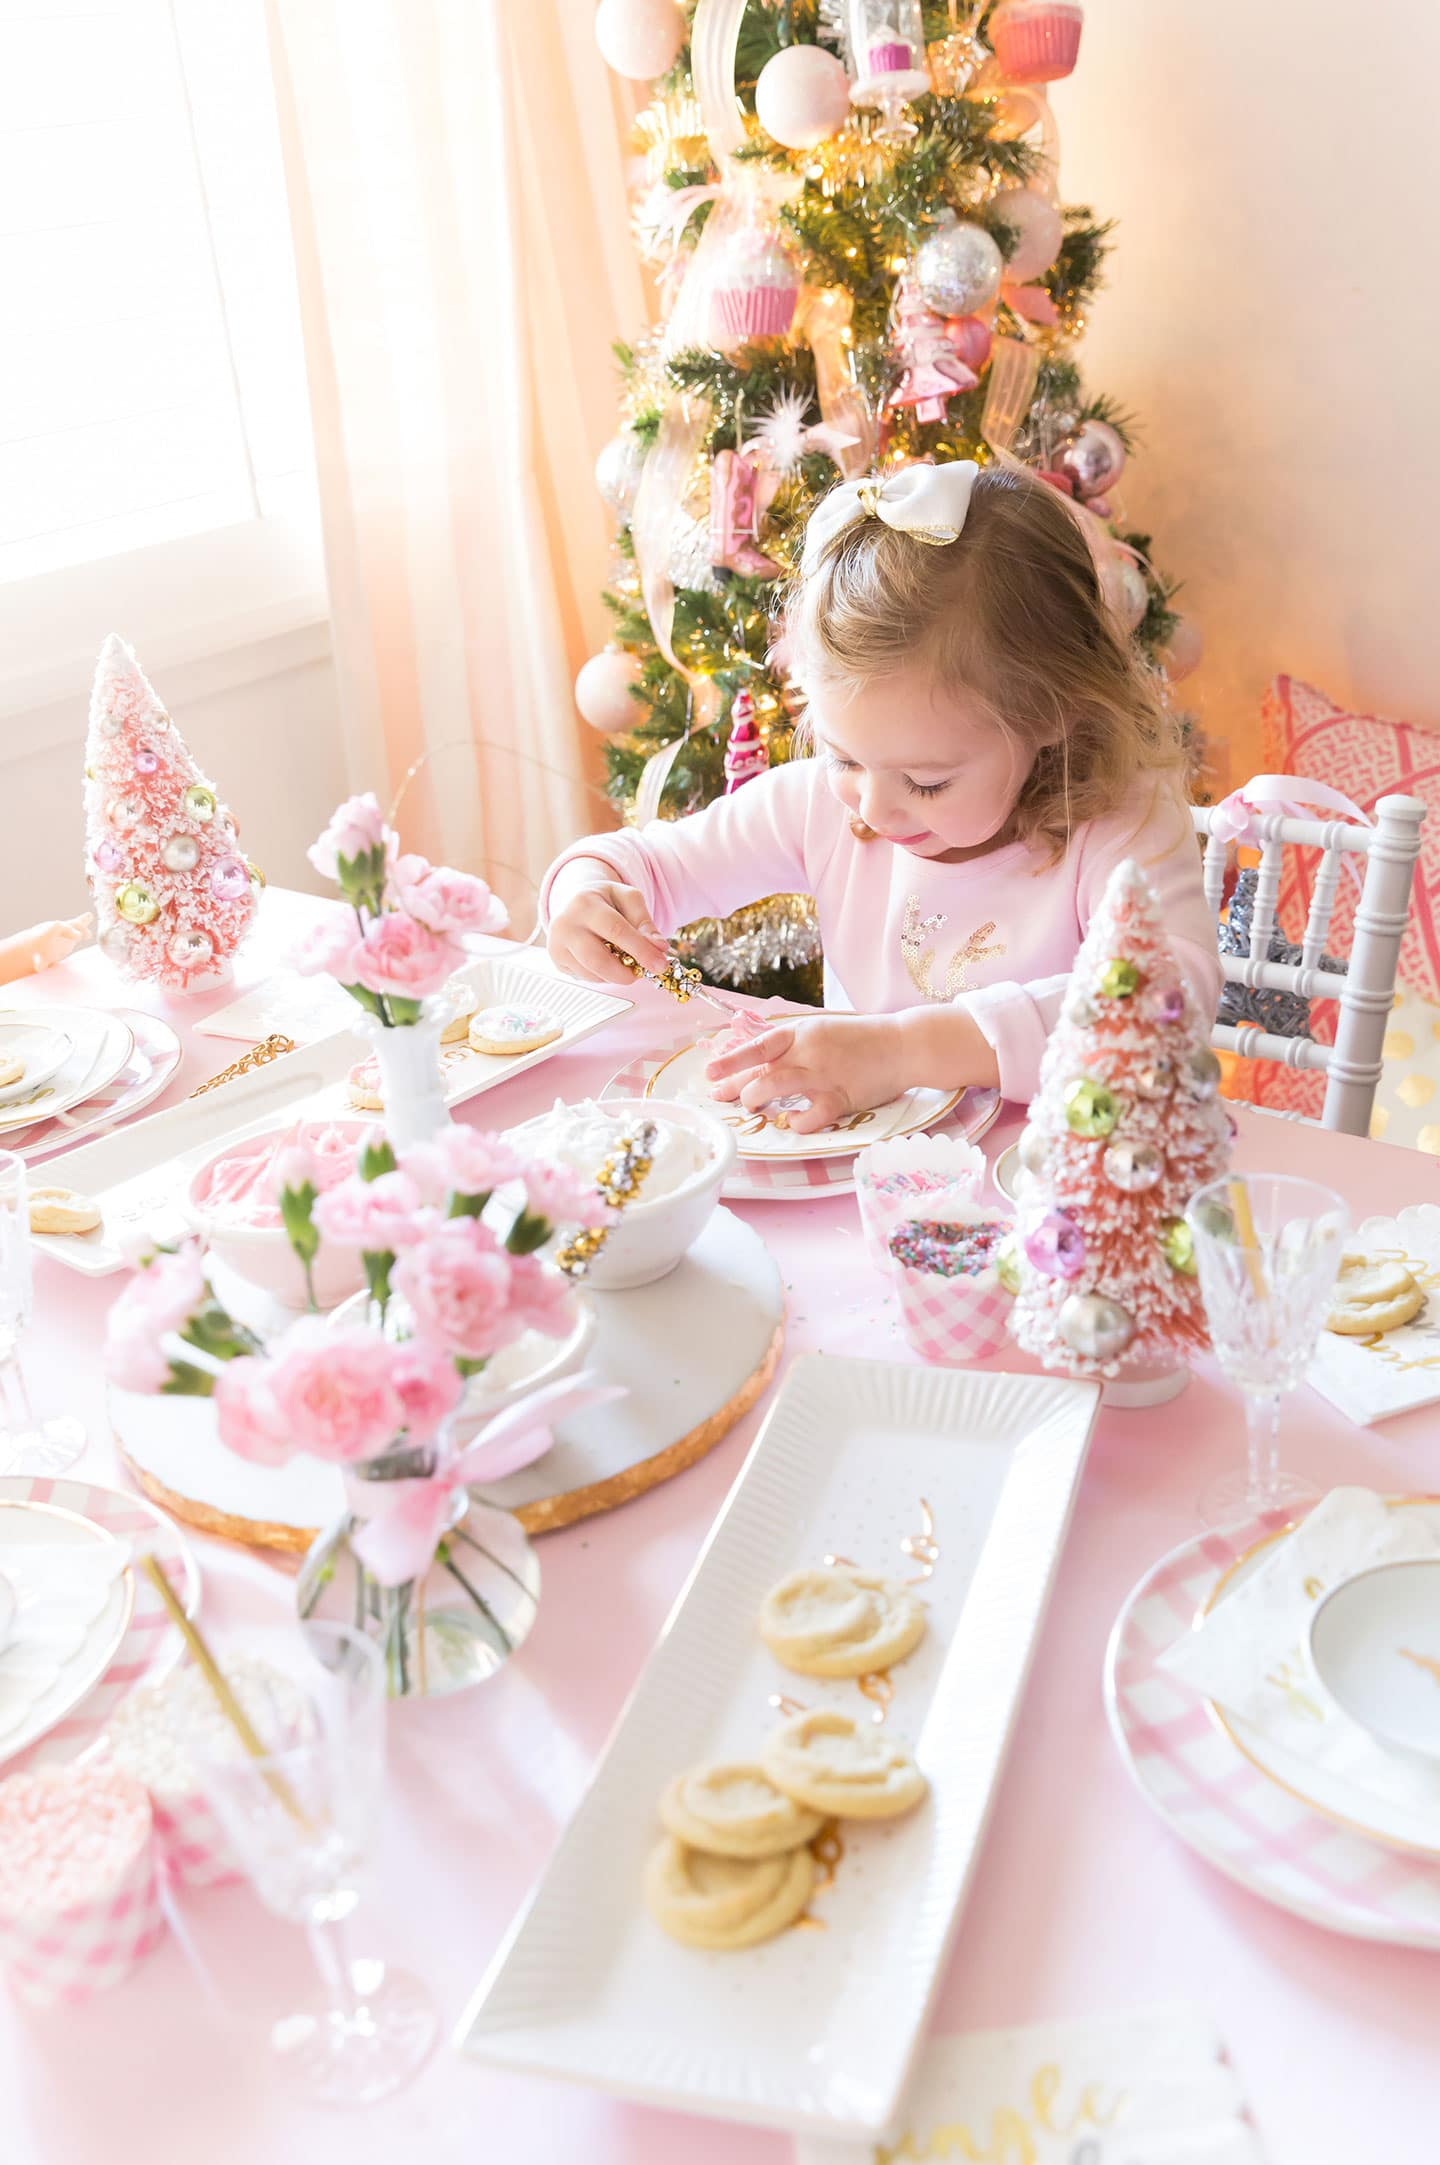 Christmas Cookie Decorating Party by Pizzazzerie